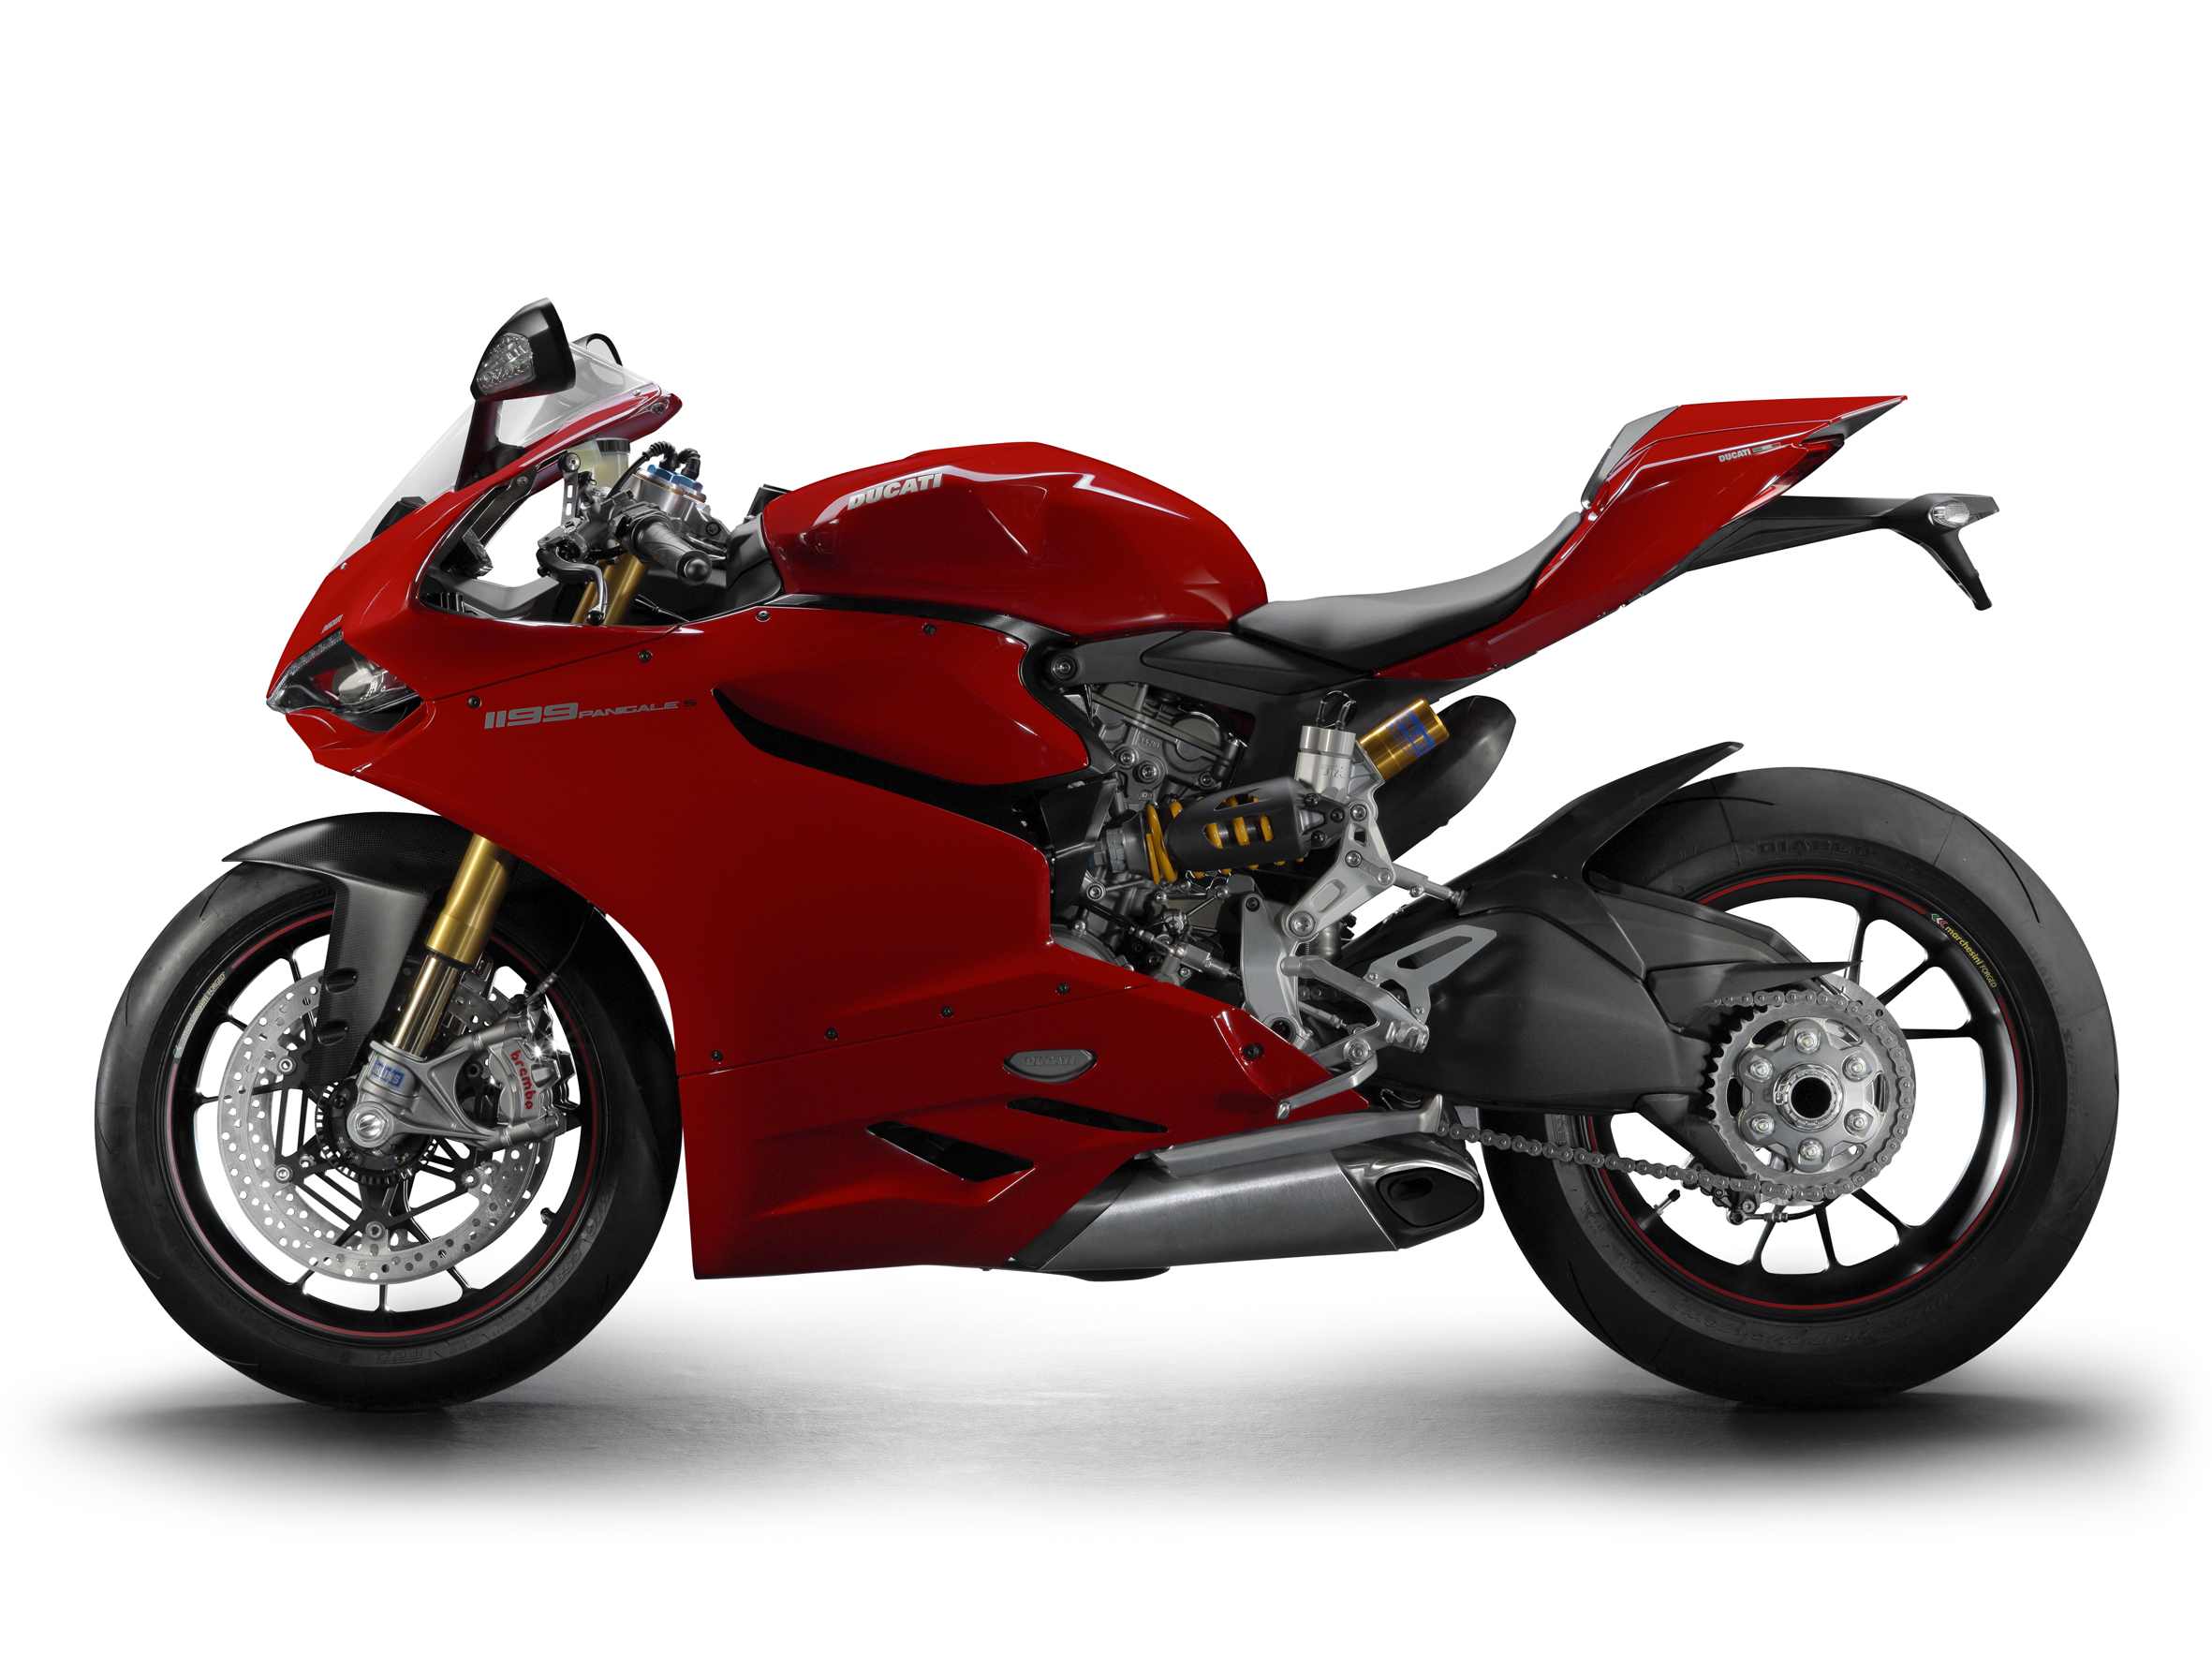 Ducati Panigale Hadiyantacom Blogger Commuter Father Engineer All New Cbr 150r Victory Black Red Bantul It